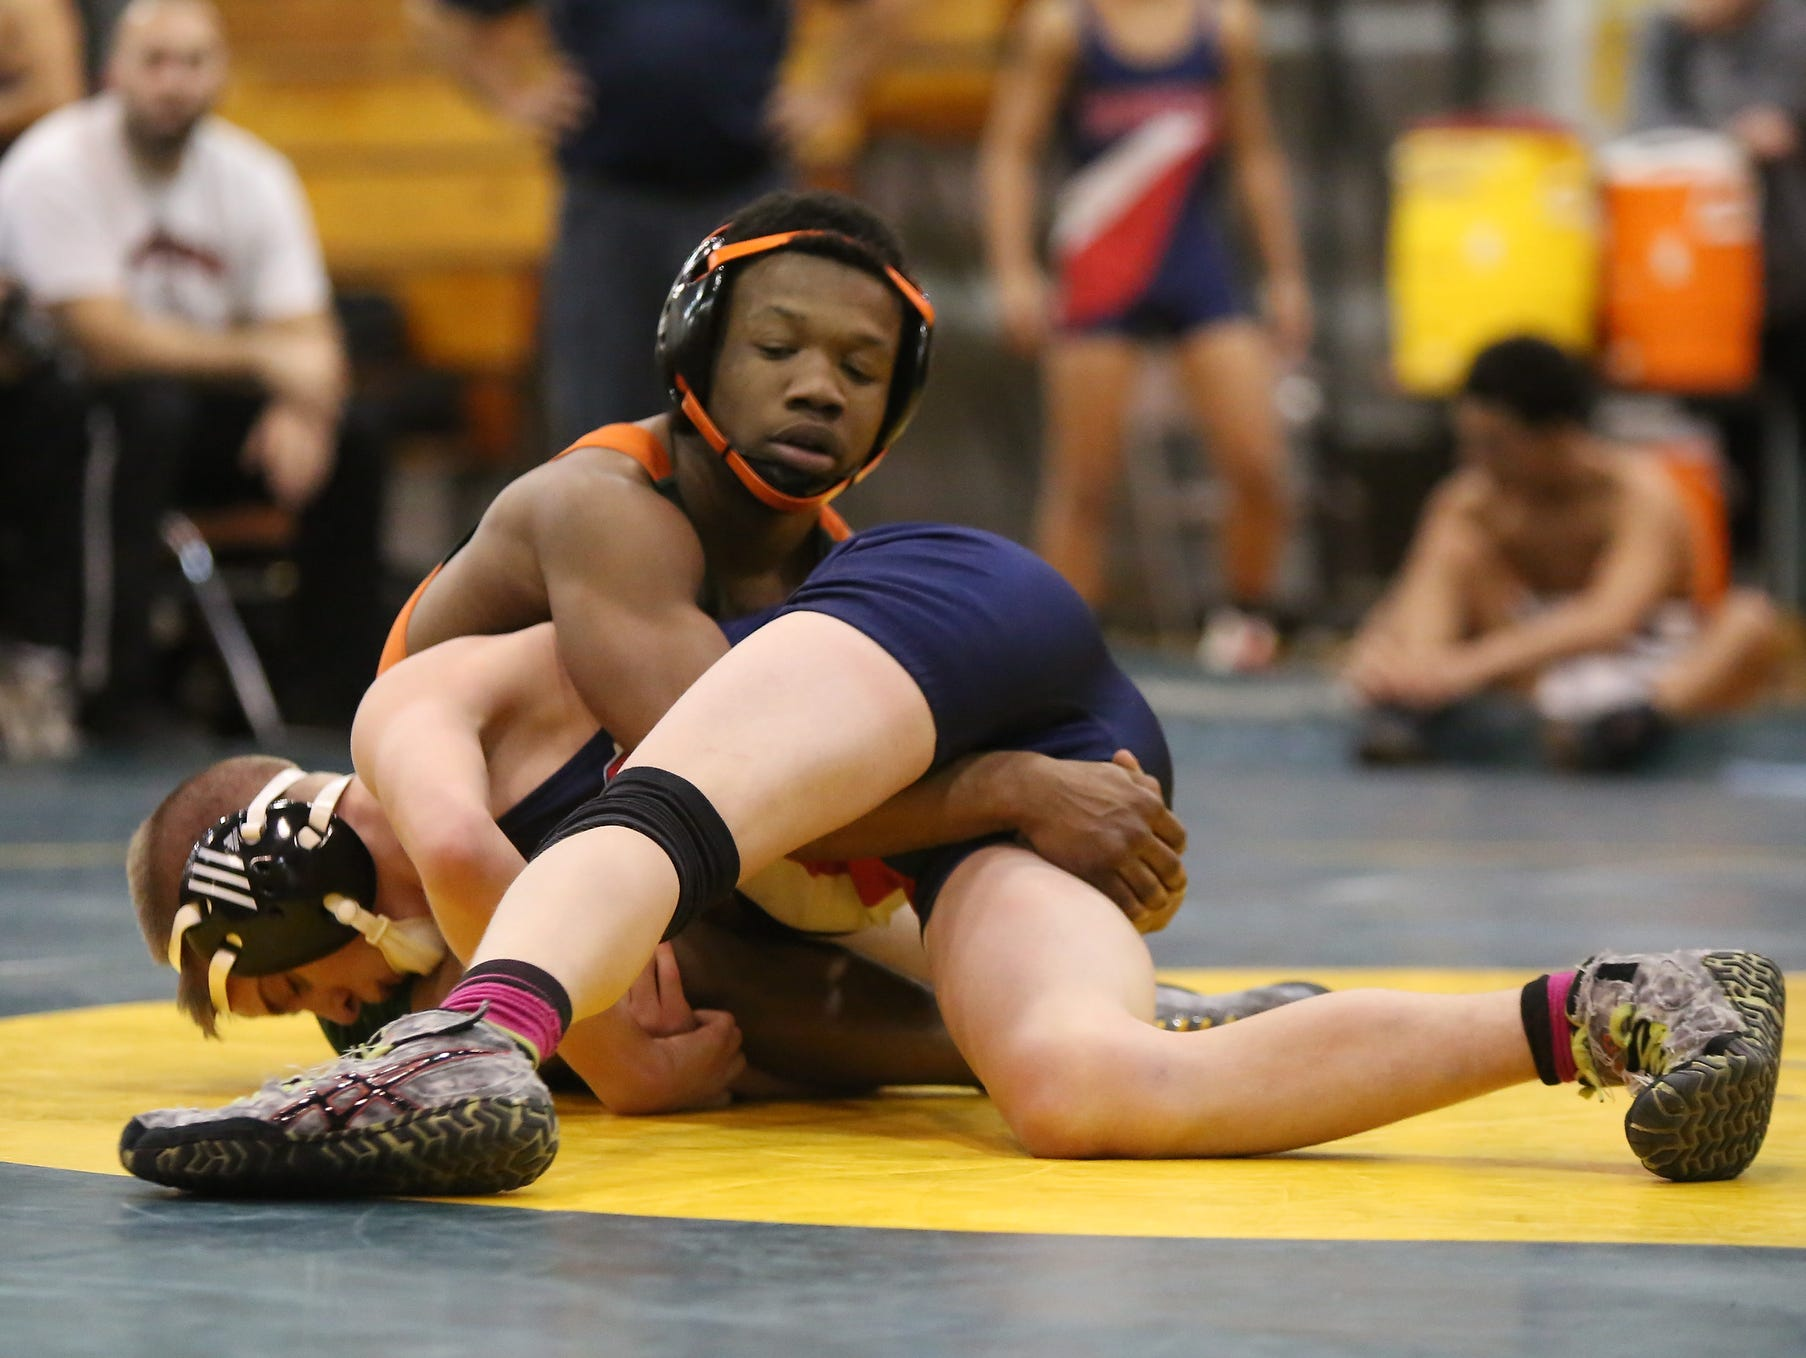 East Ramapo's Trey Wardlaw, top, wrestles Yonkers' Hunter Simoes in a 113-pound match during a quad meet in the Section 1 dual meet championships at Ramapo High School in Spring Valley on Wednesday, Dec. 2, 2015. East Ramapo defeated Yonkers 53-29 and advances to the semifinals.